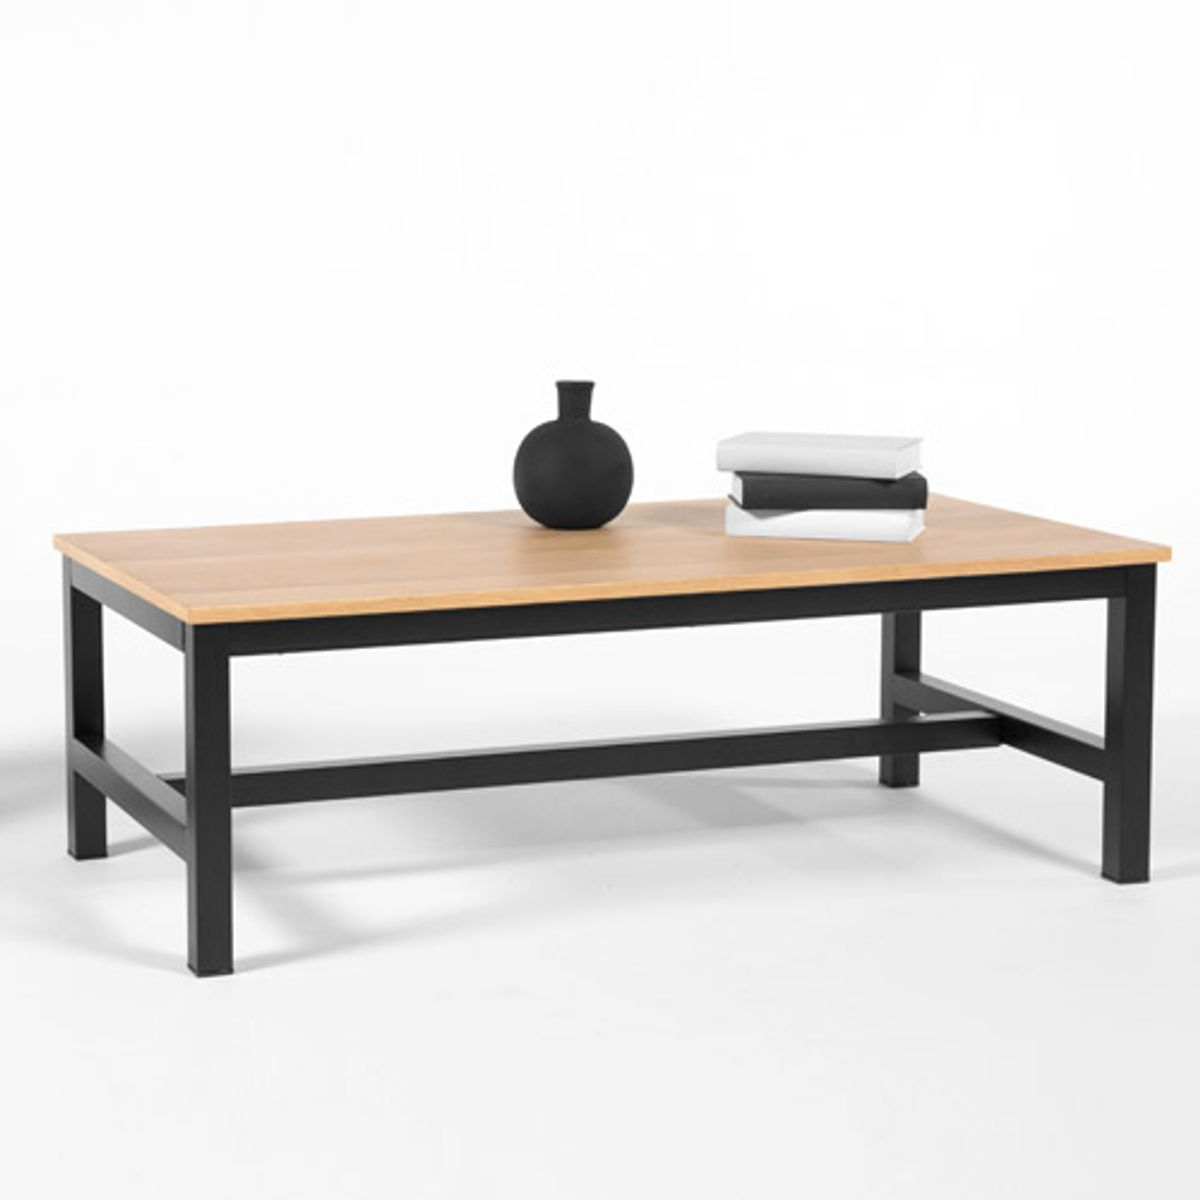 table basse avec plateau en ch ne et pied m tal robson decoclico. Black Bedroom Furniture Sets. Home Design Ideas